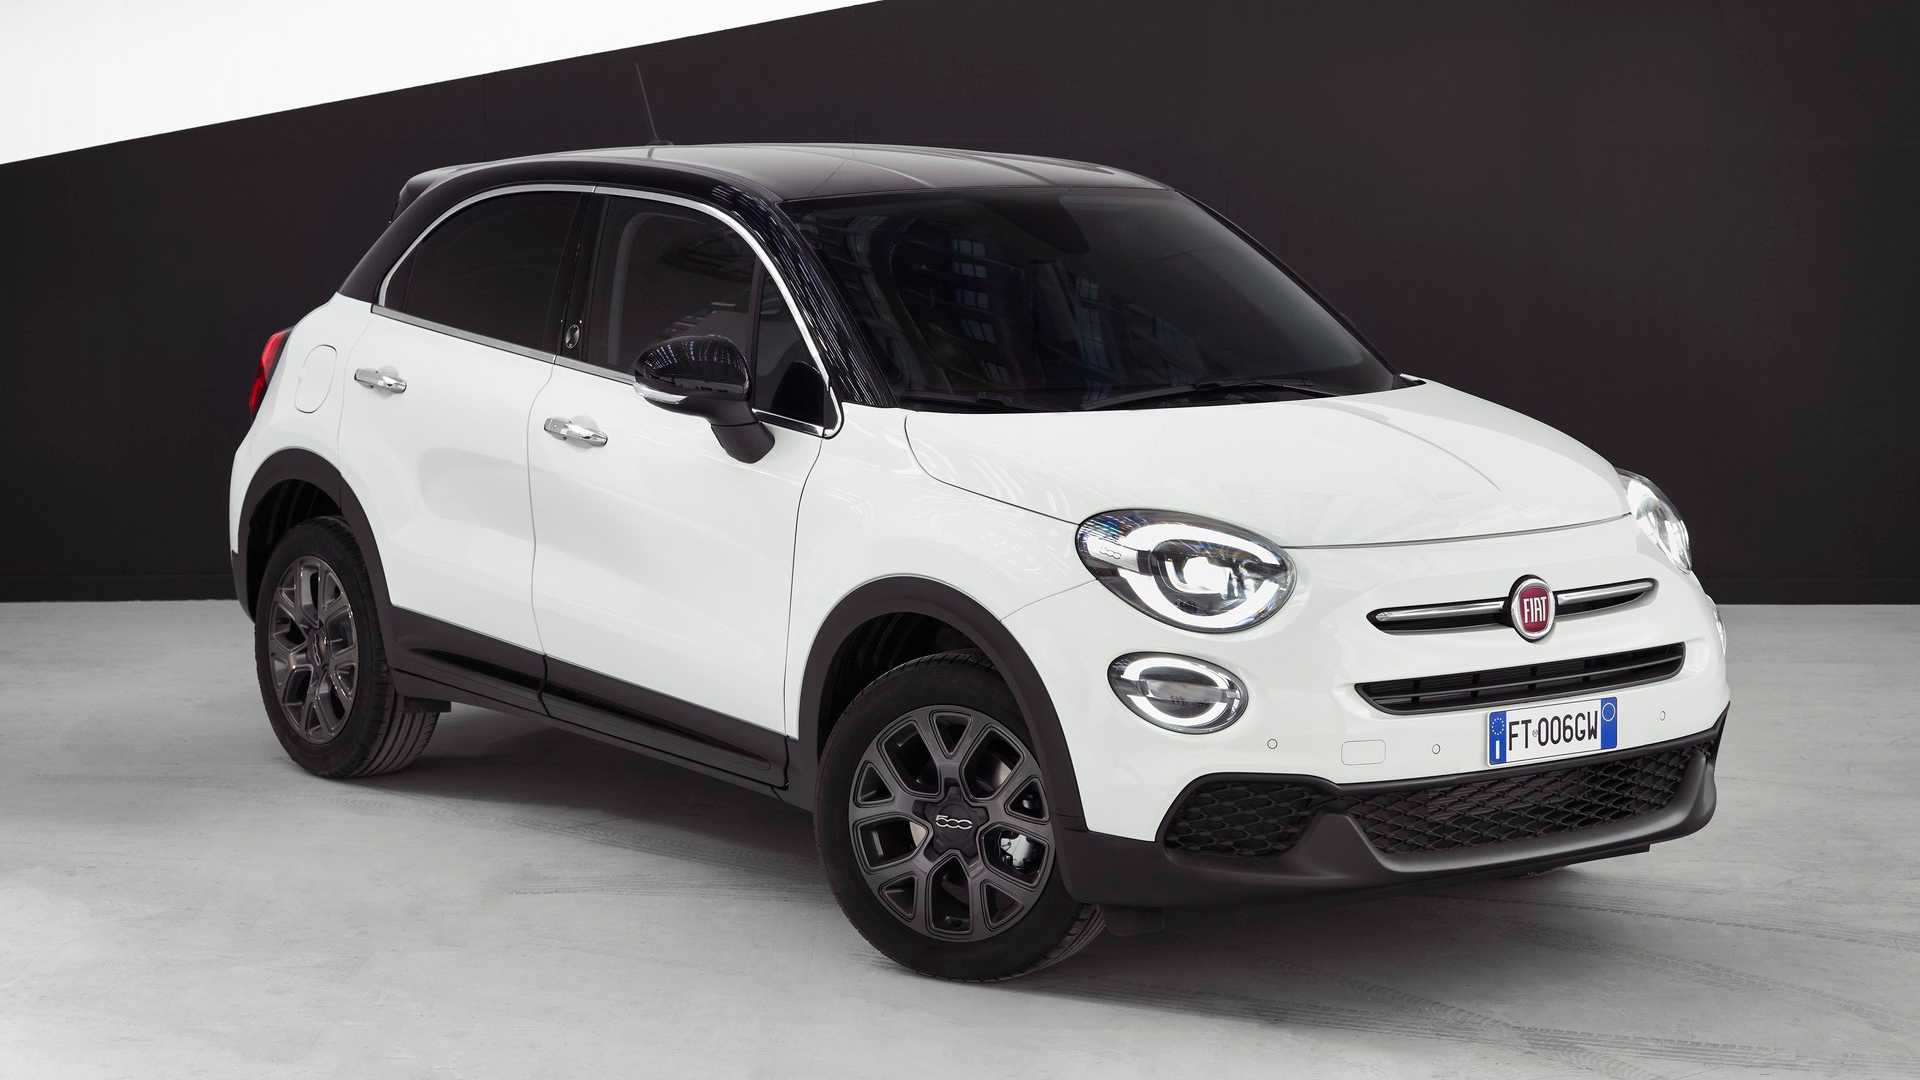 Fiat 500x 120th Anniversary Edition Arrives Wearing Lots Of Black Trim